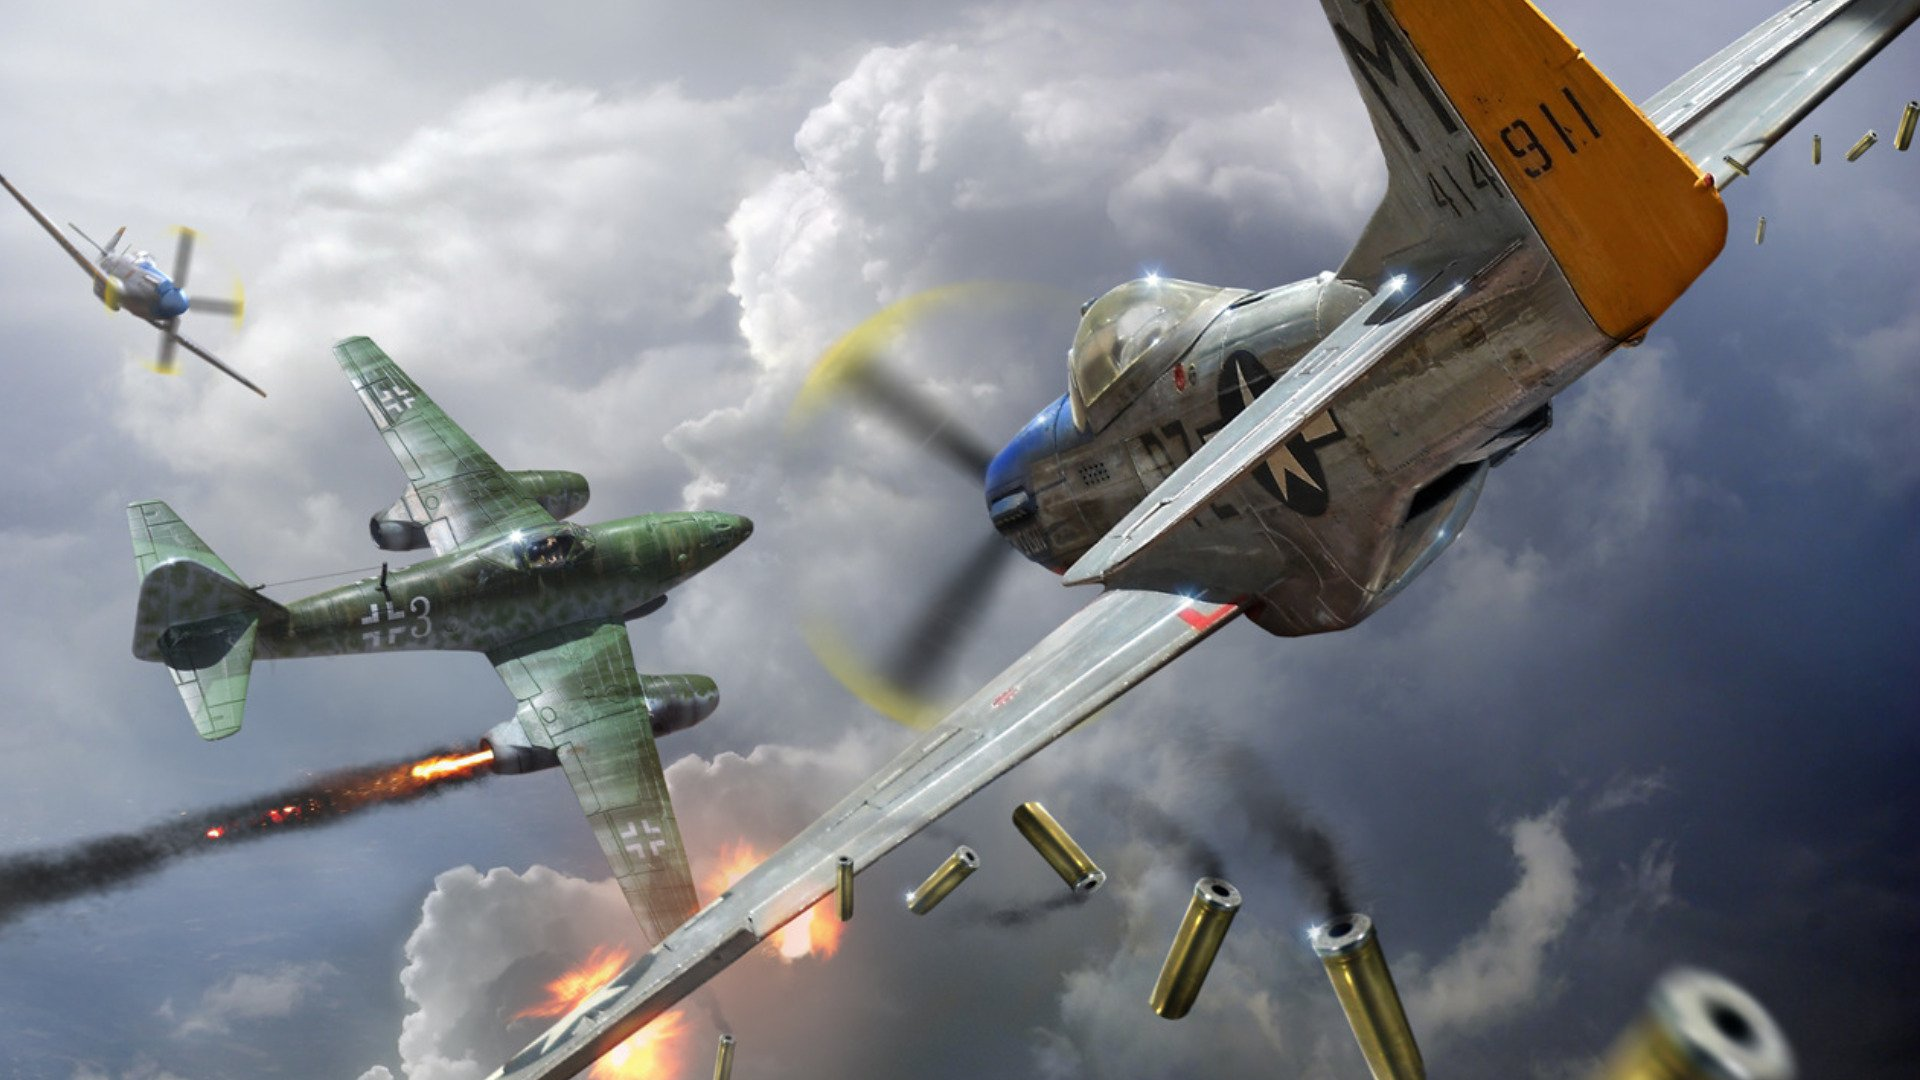 Ww2 Aircraft Wallpaper